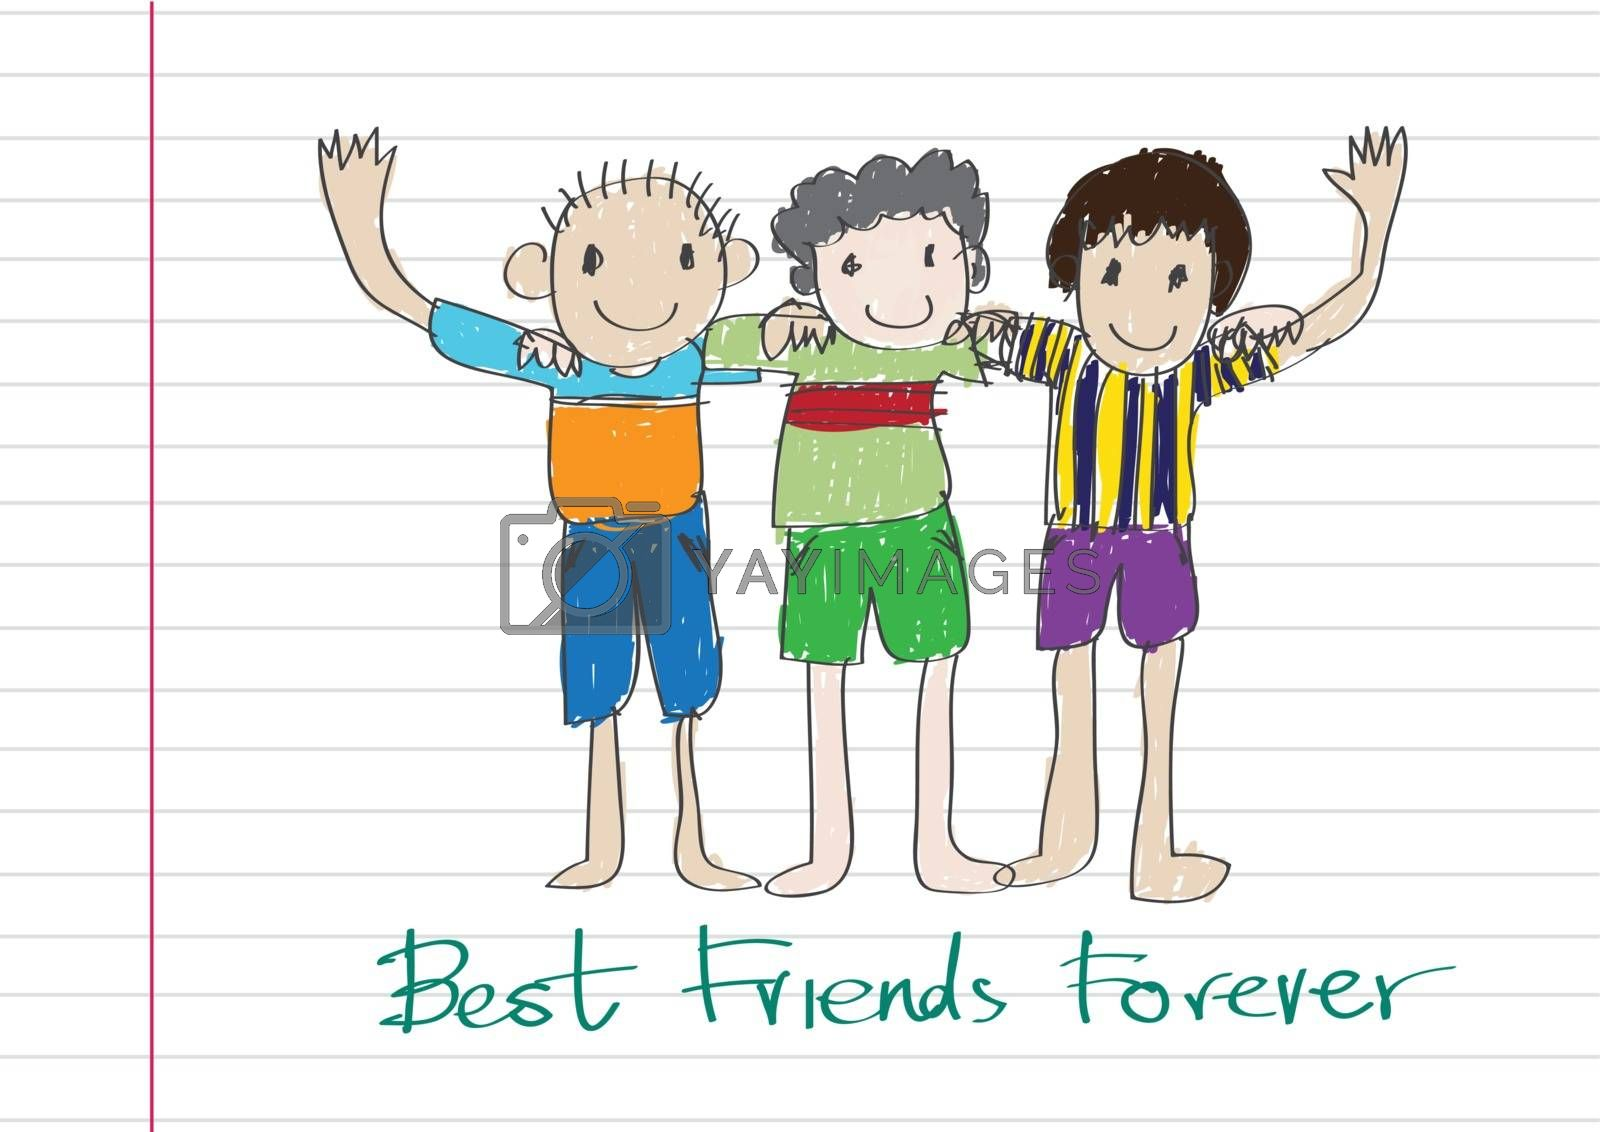 Happy Friendship Day and Best Friends Forever idea design by kiddaikiddee